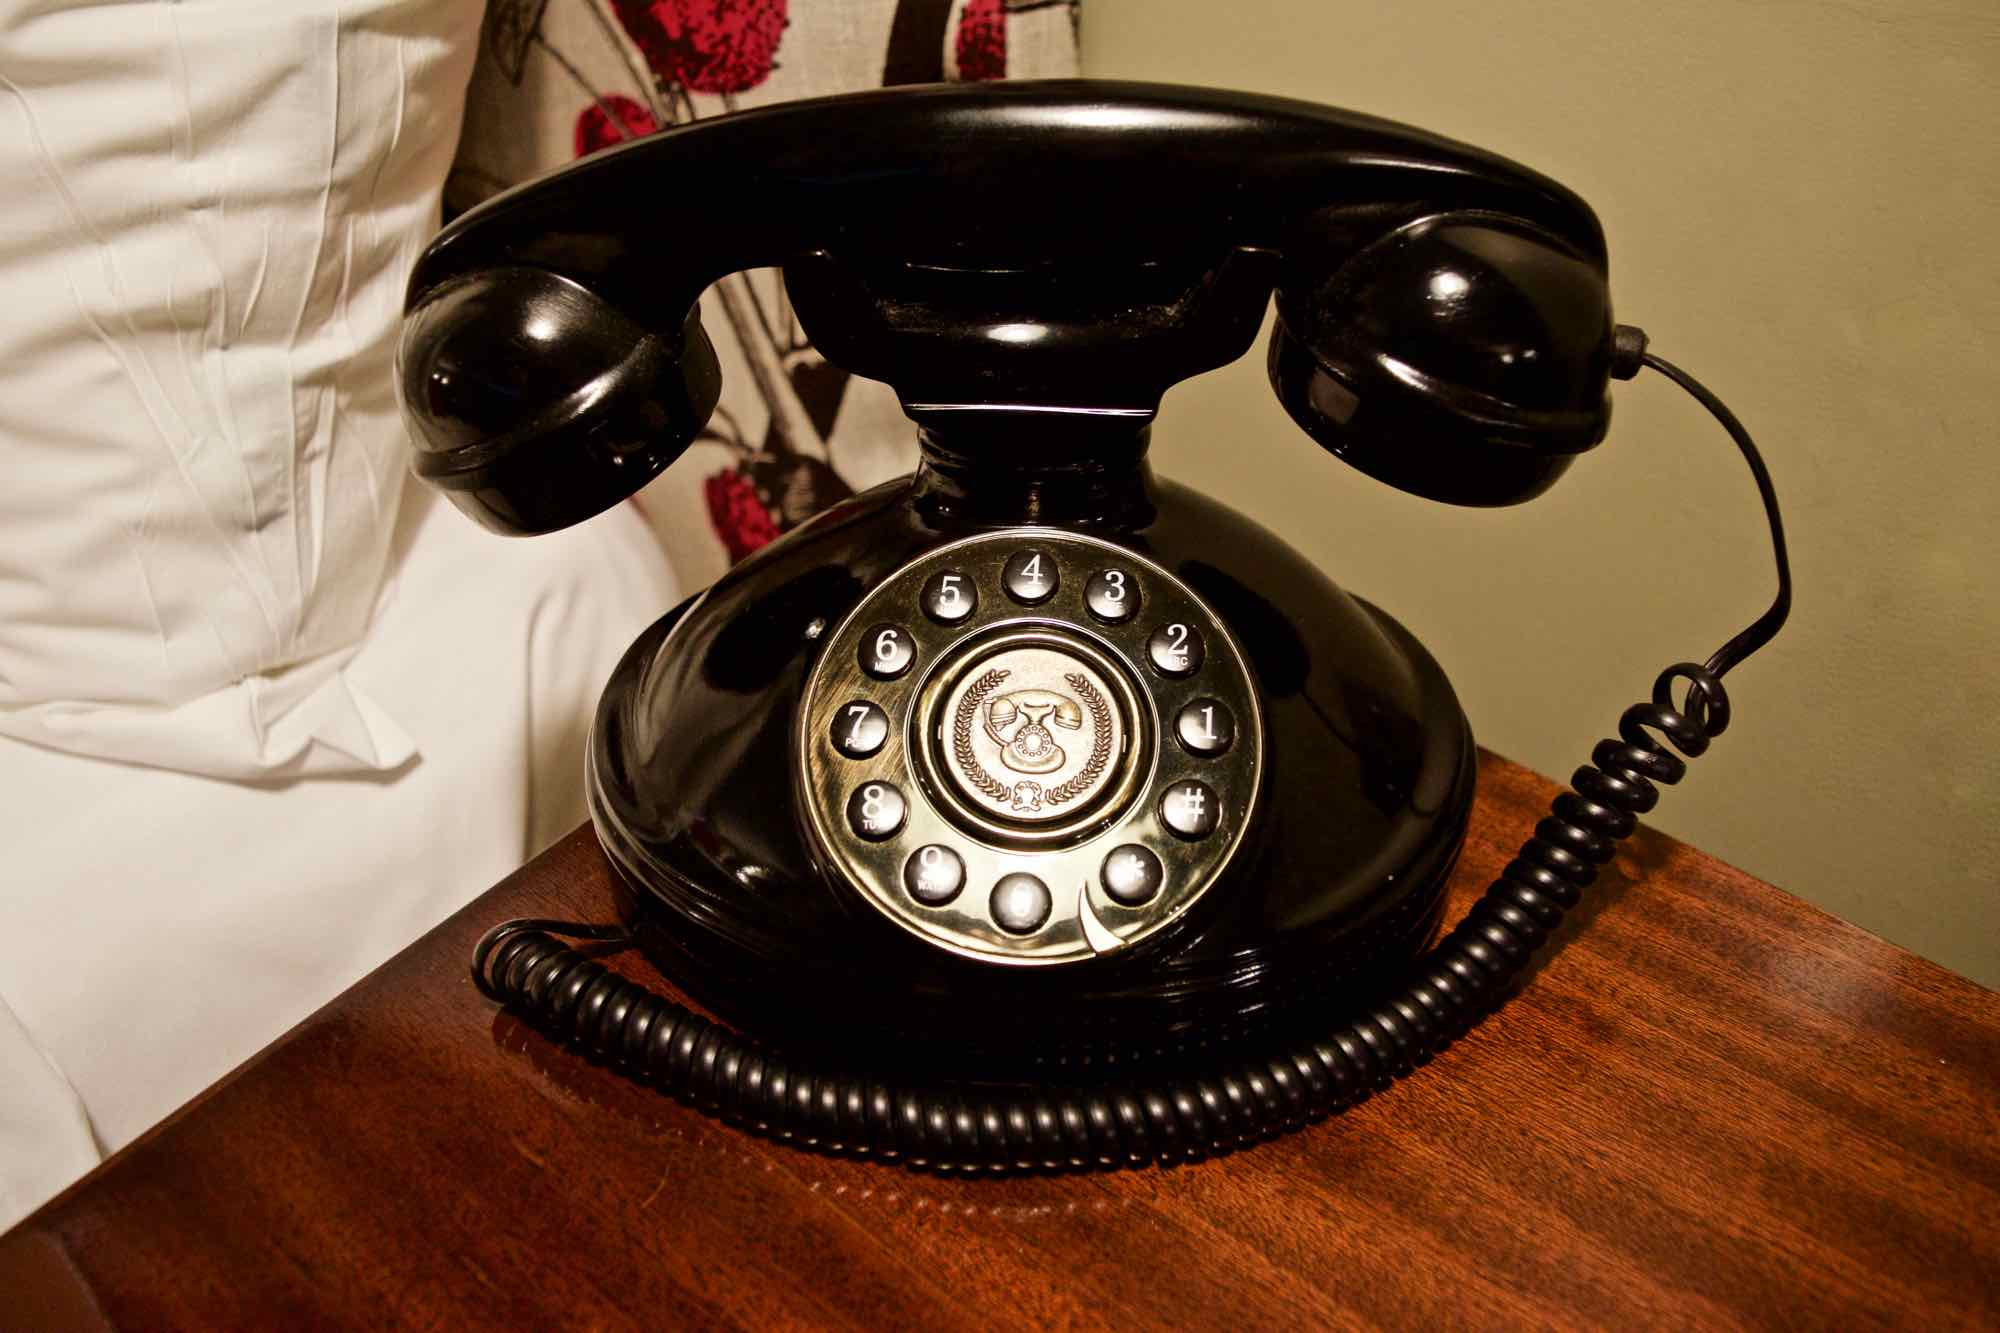 Vintage telephone at Burley Manor Hotel, New Forest